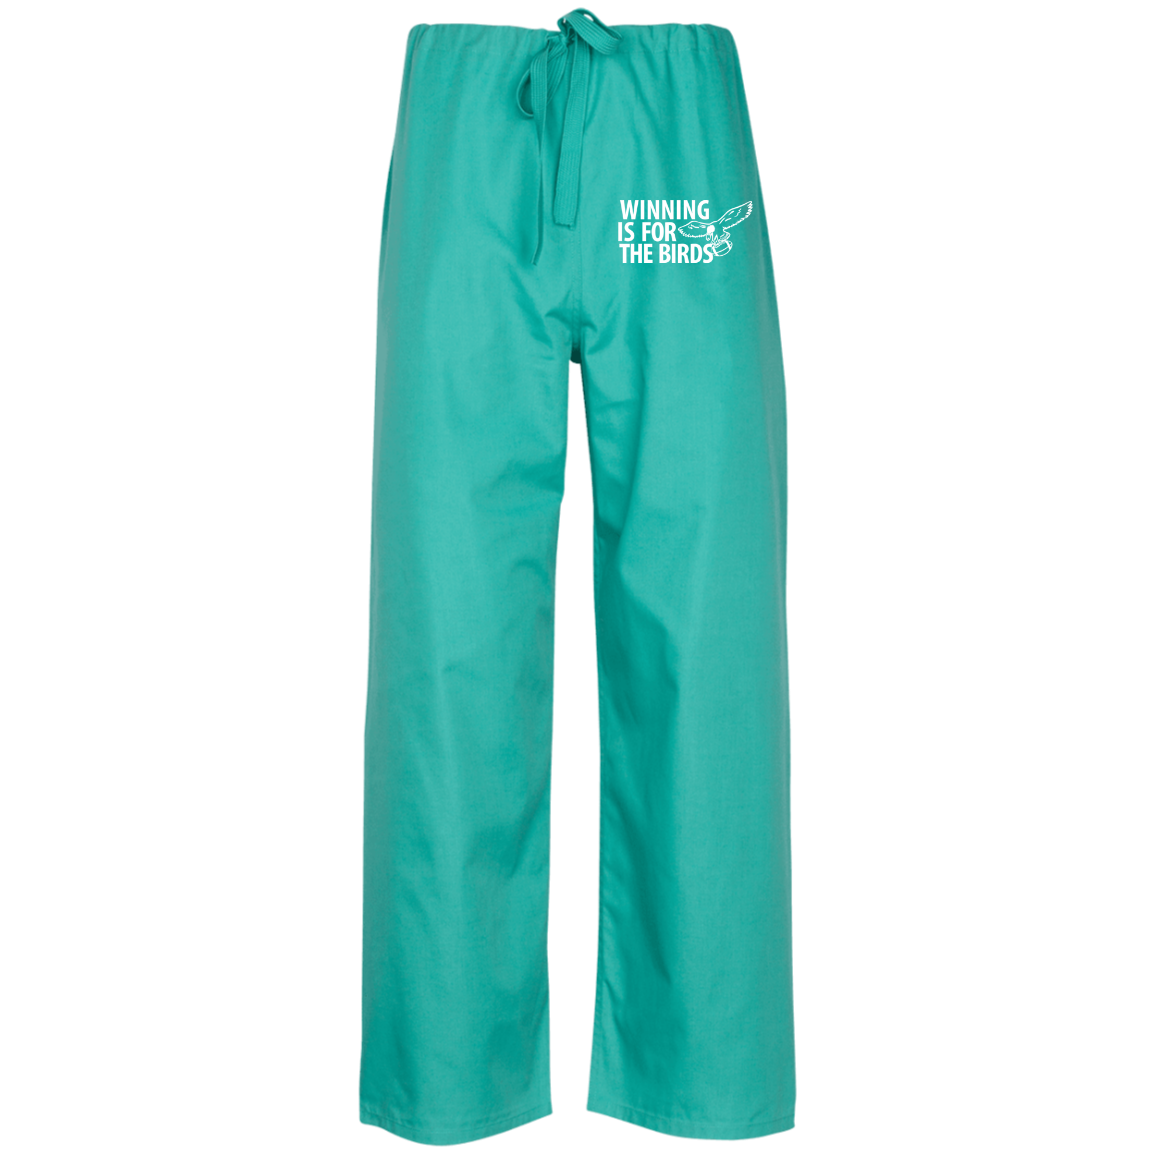 Winning is for The Birds Embroidered Scrub Pant